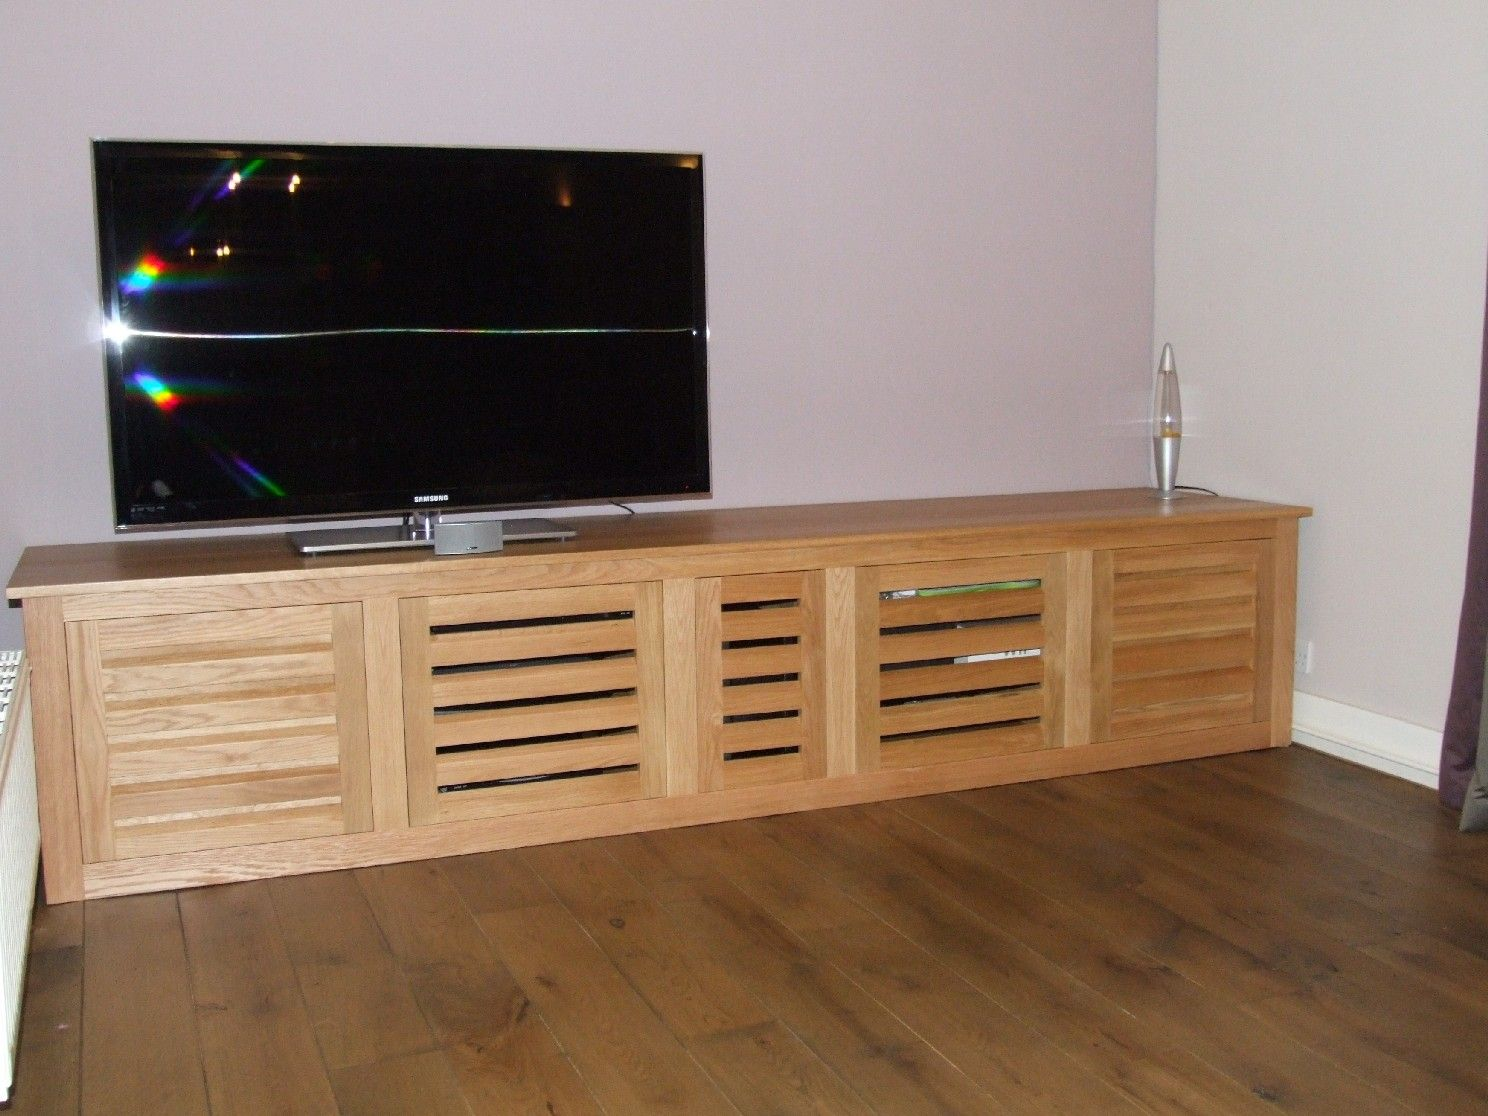 Bespoke Oak Tv Cabinet With Louvered Doors